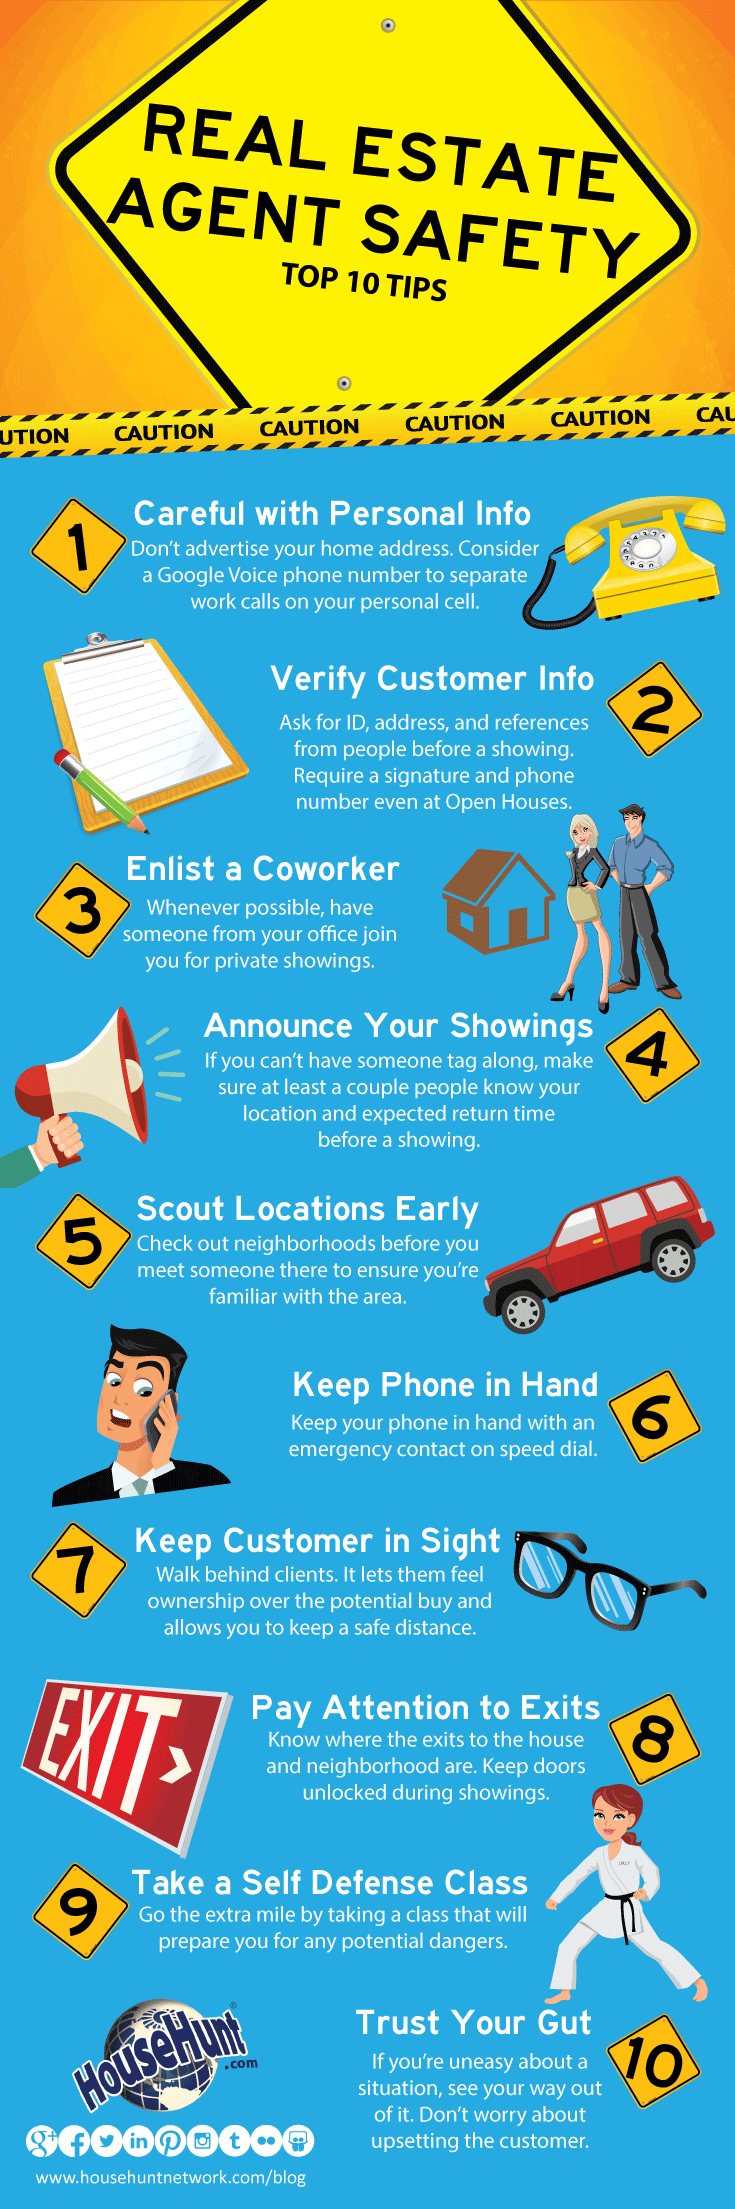 Top 10 Real Estate Agent Safety Tips [Infographic